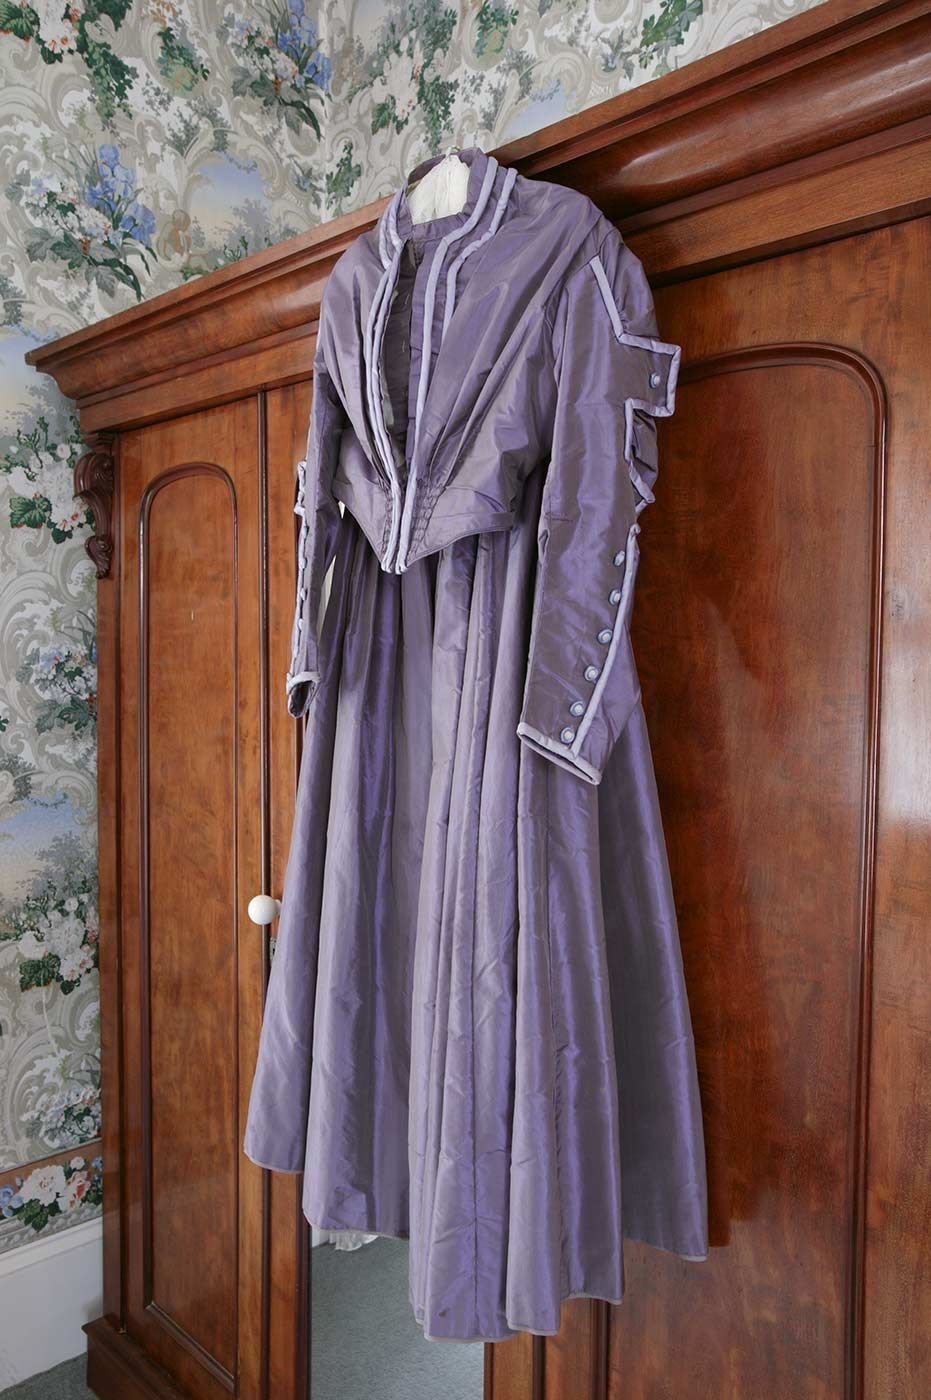 Purple period dress hanging from a wardrobe. - click to view larger image